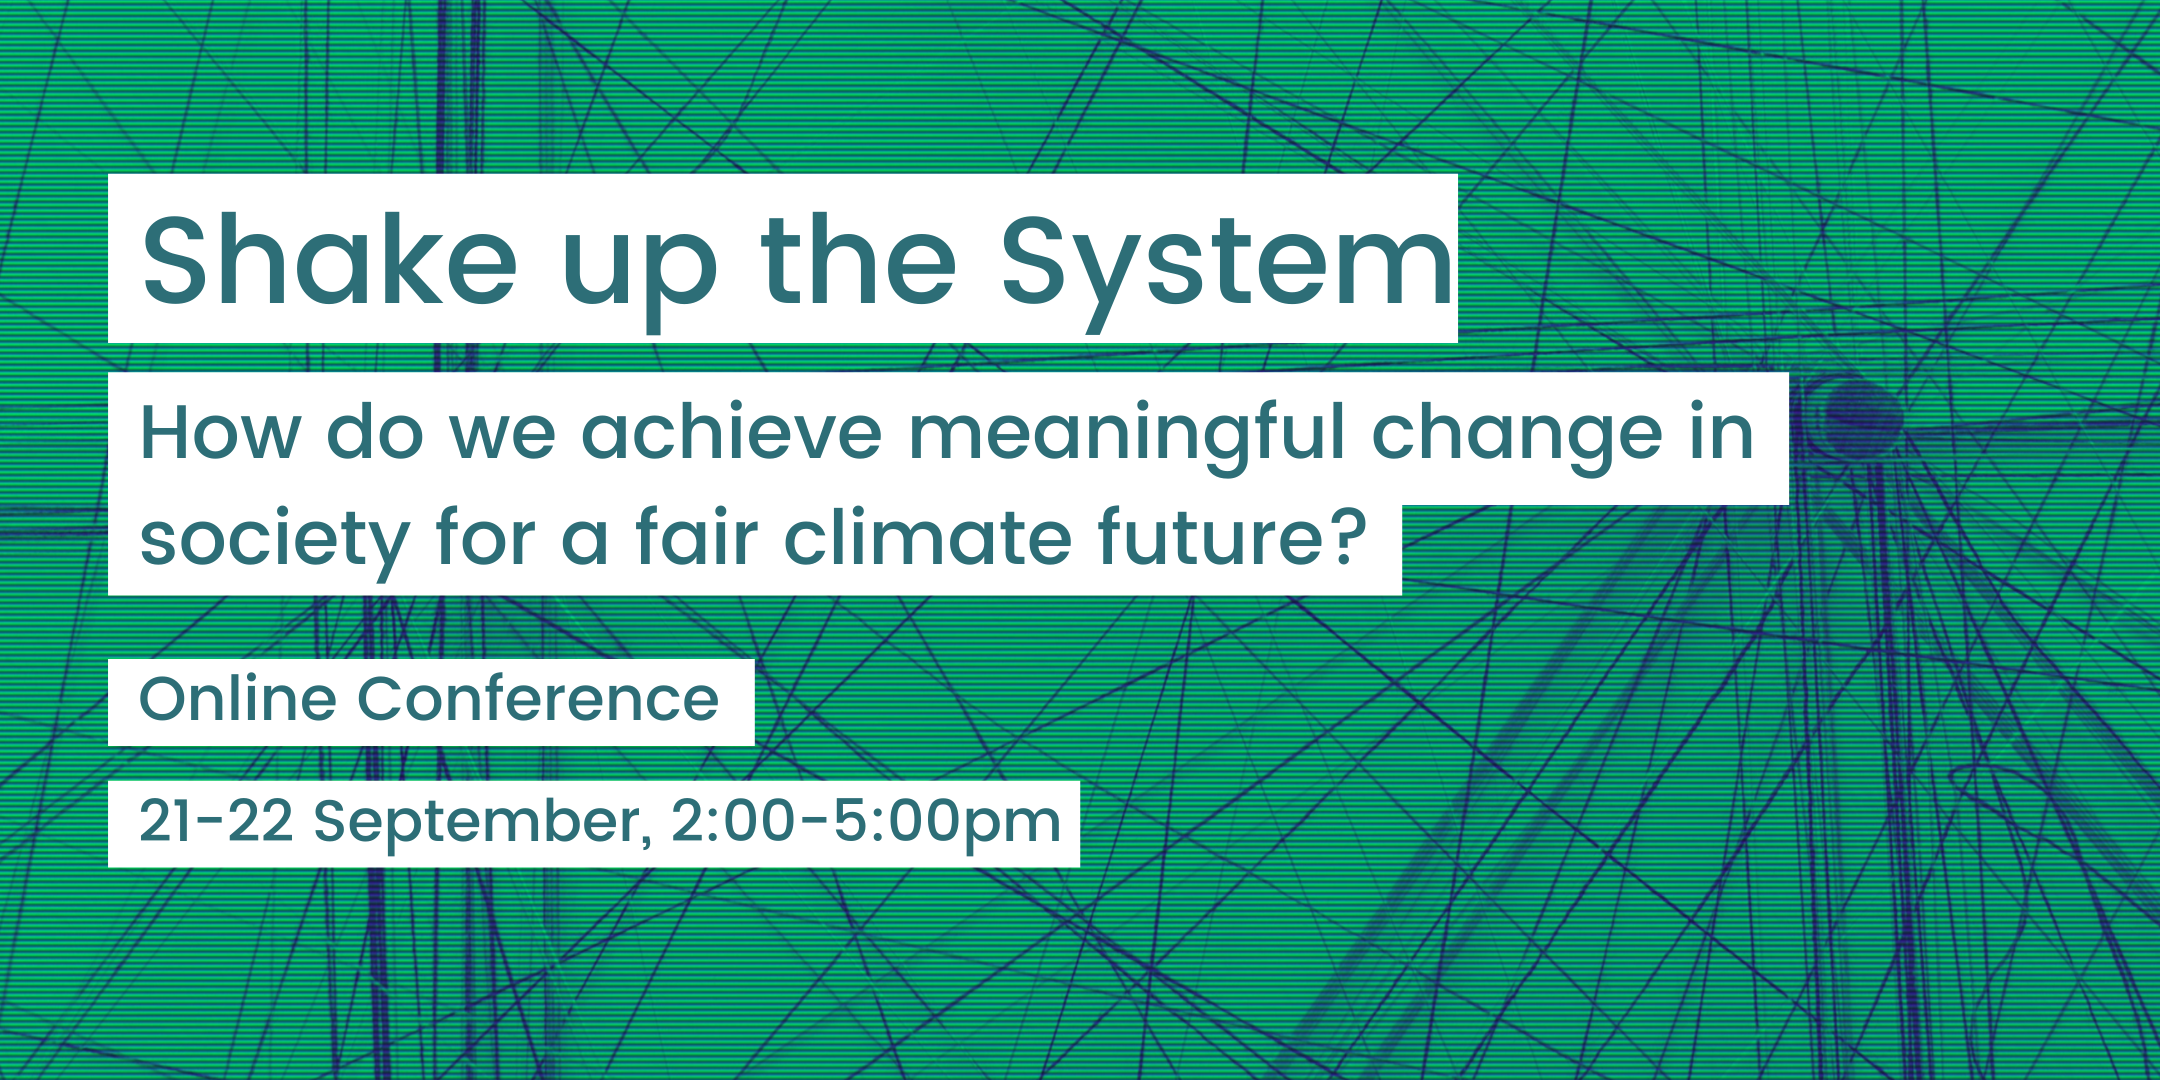 Shake up the System: Online Conference